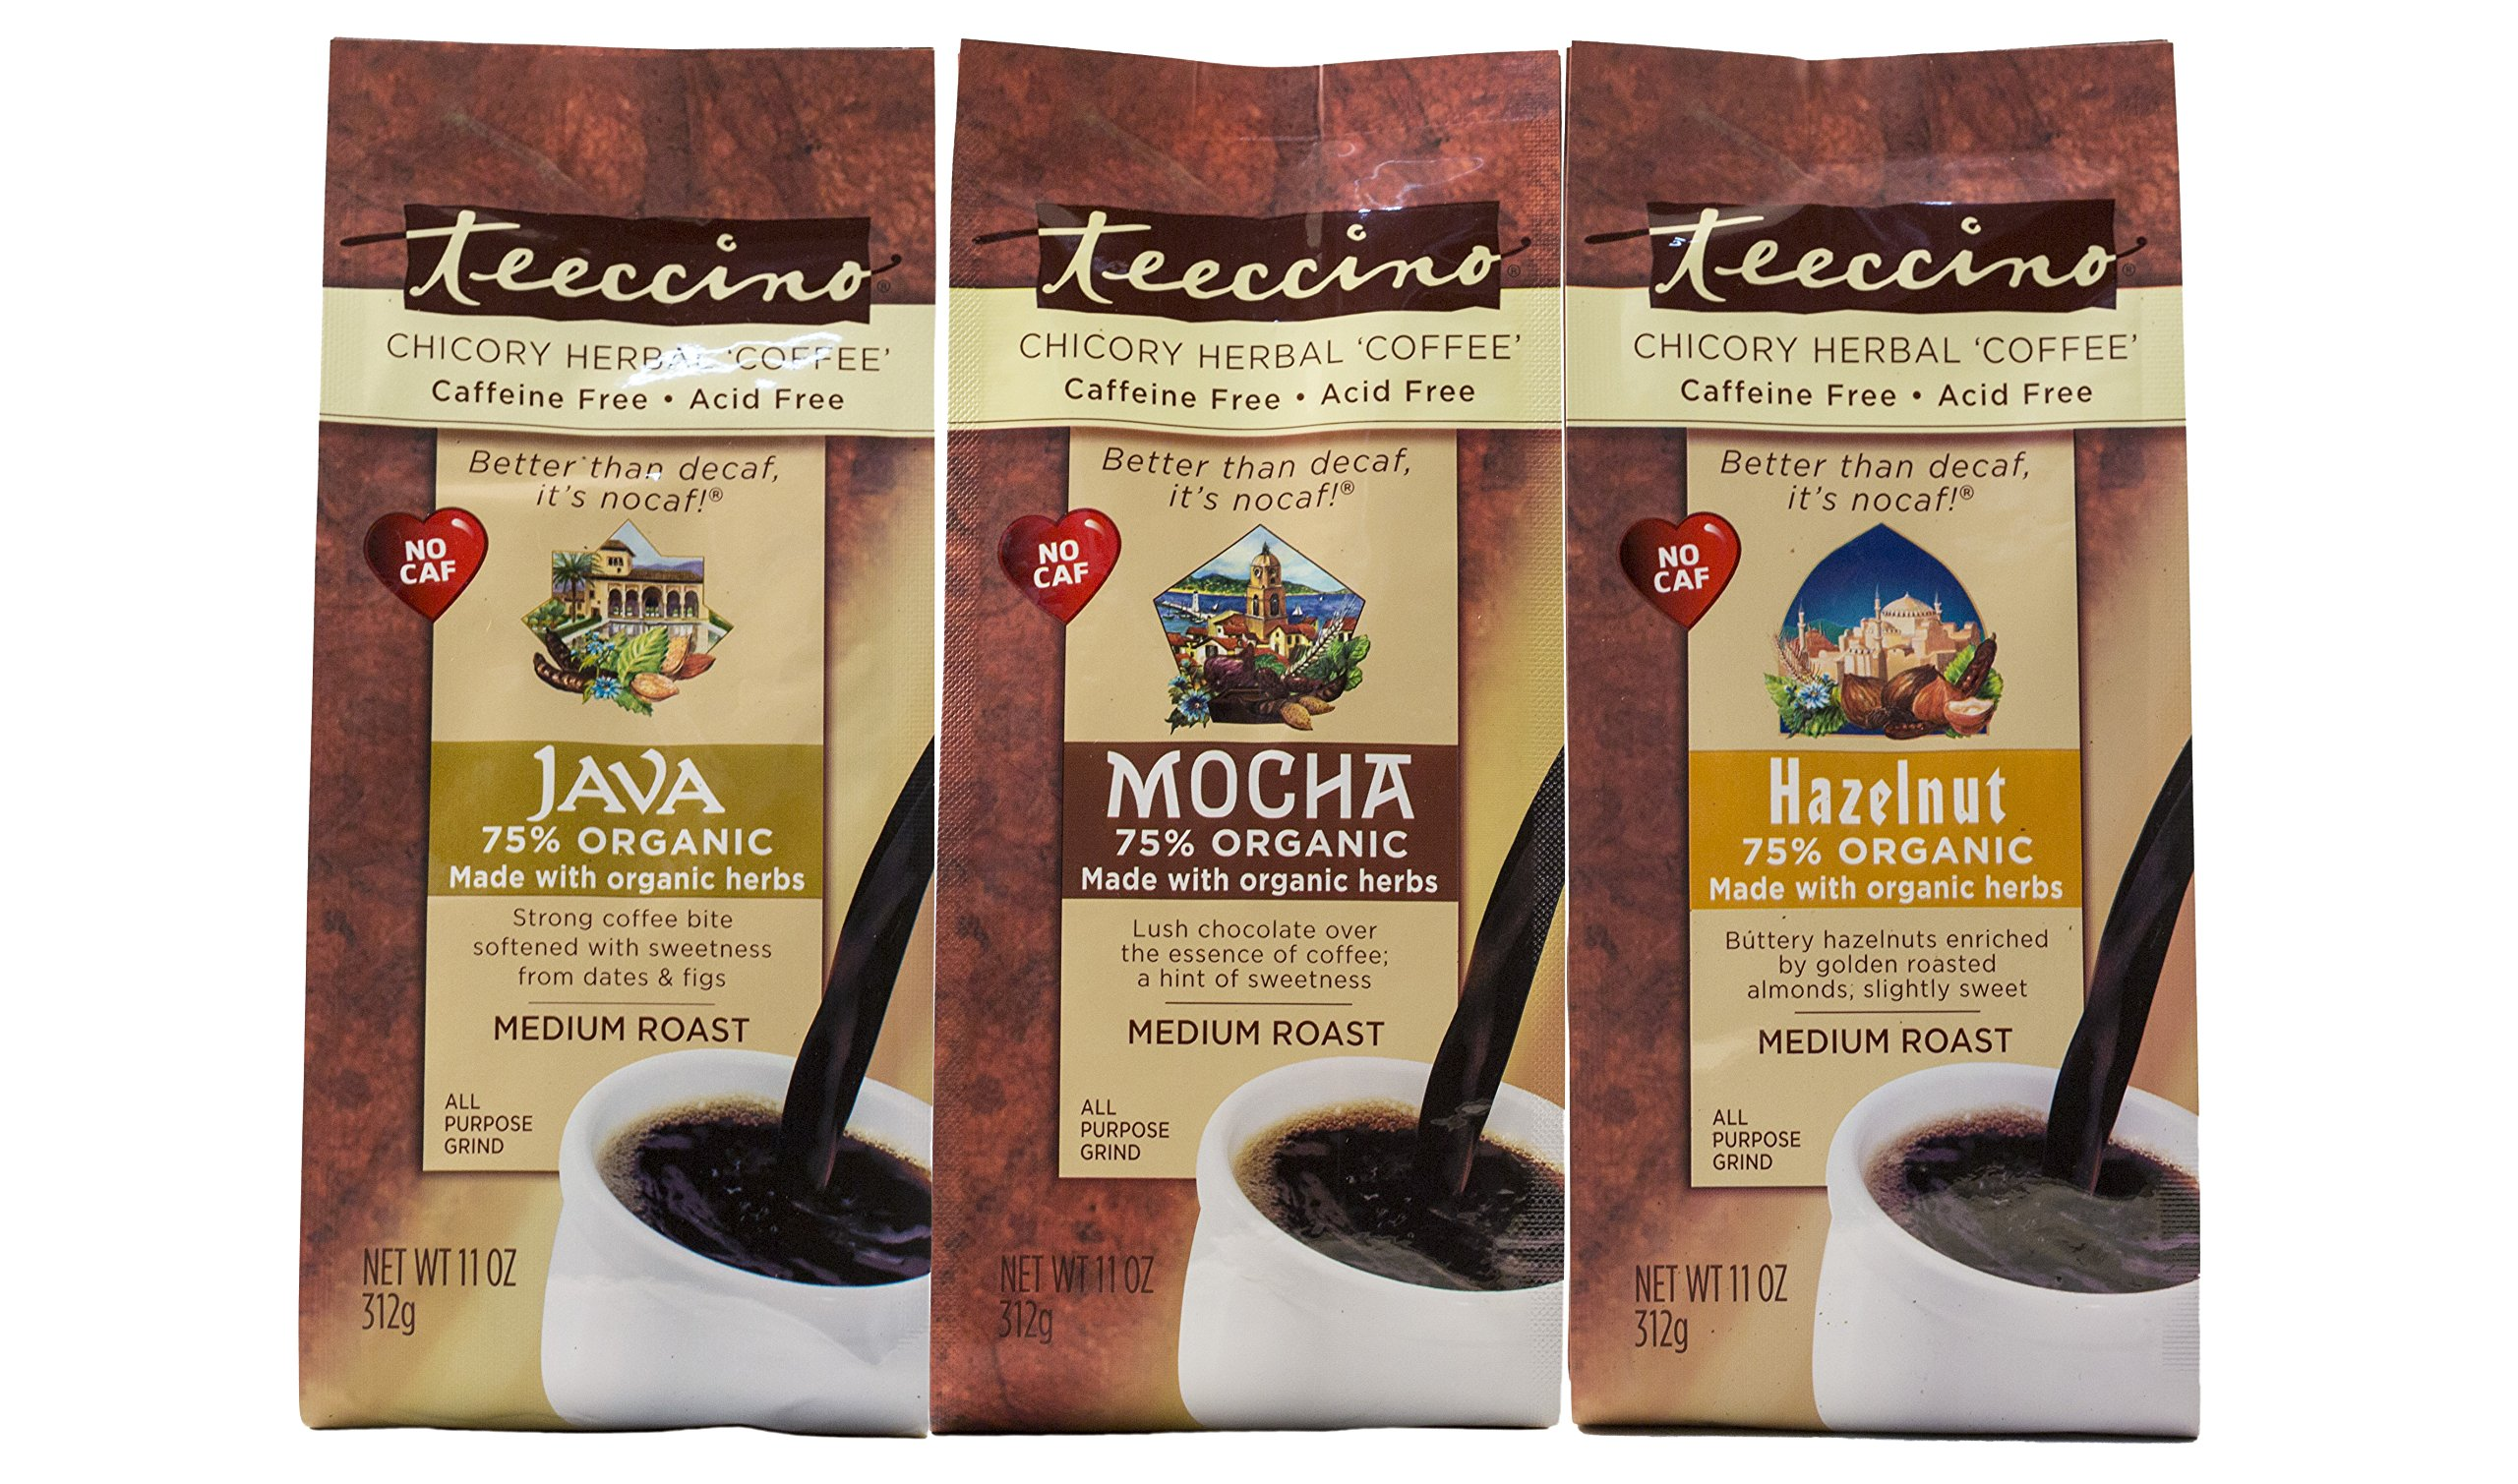 Teeccino Chicory Herbal Coffee Variety Pack (Java, Mocha, Hazelnut), Caffeine Free, Acid Free, Coffee Alternative, Prebiotic, 11 Ounce (Pack of 3) by Teeccino (Image #1)